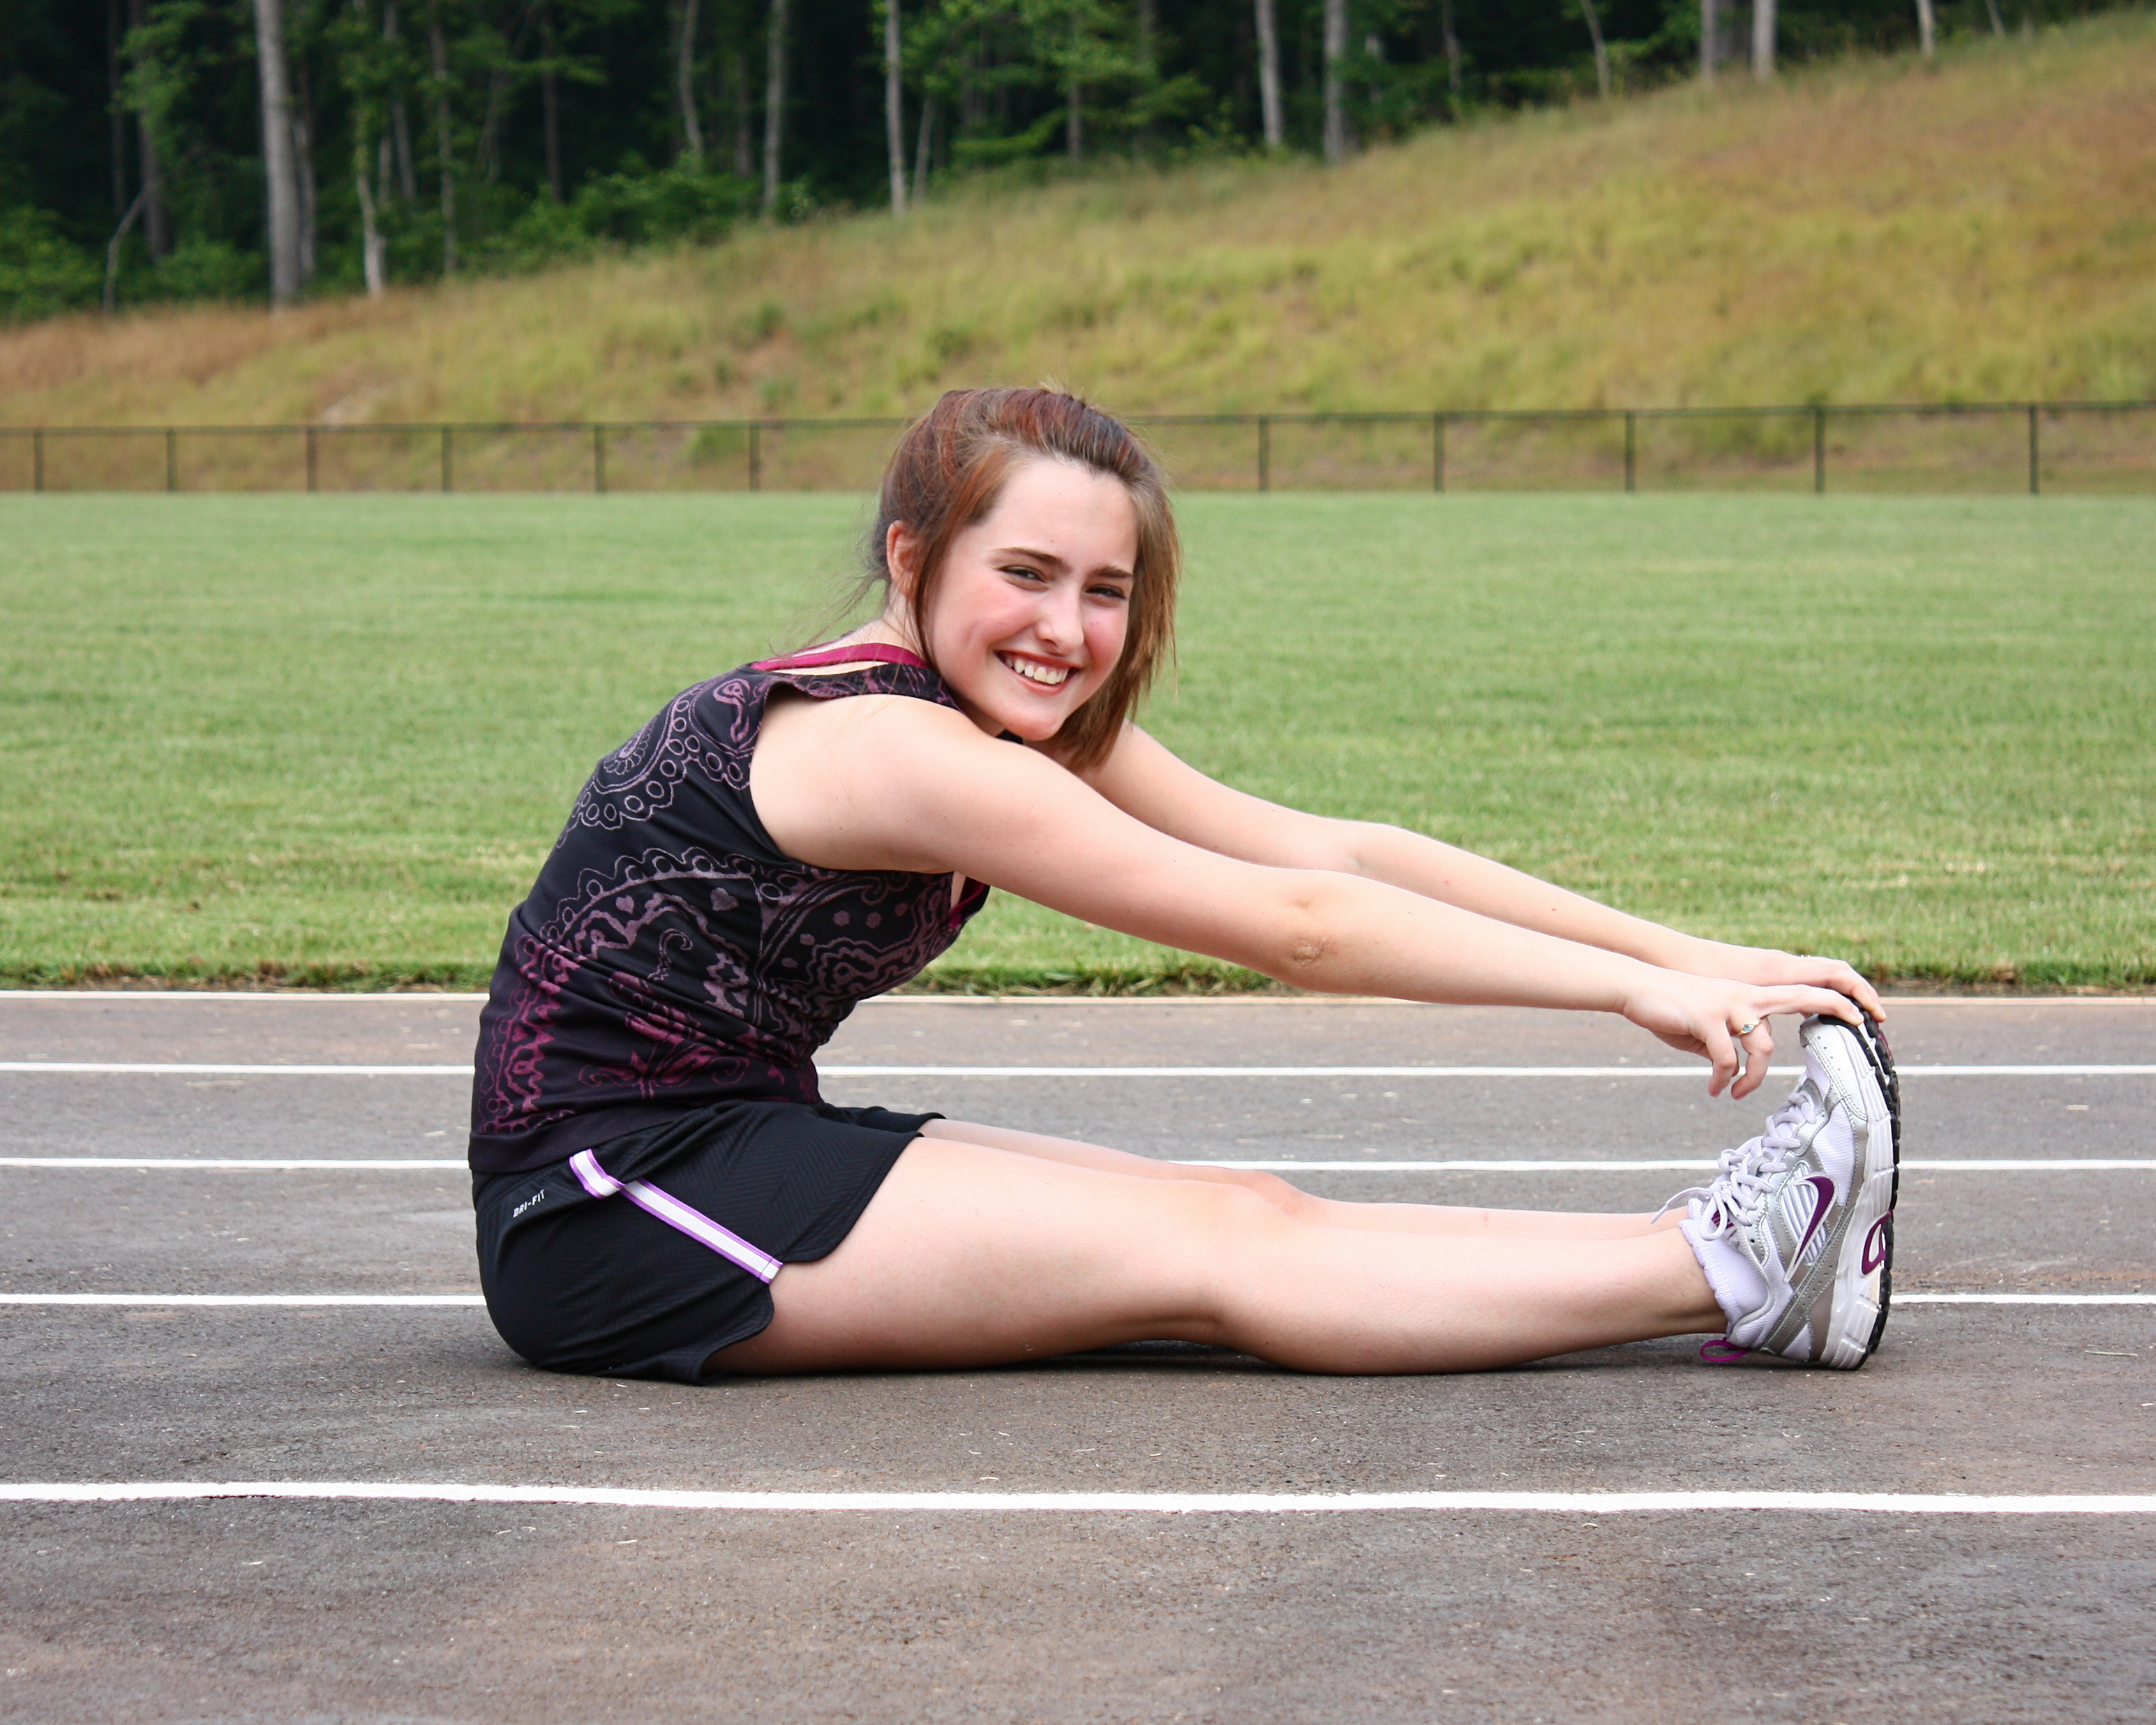 A cute young girl doing stretches, Beautiful, Tweens, Track, Teens, HQ Photo